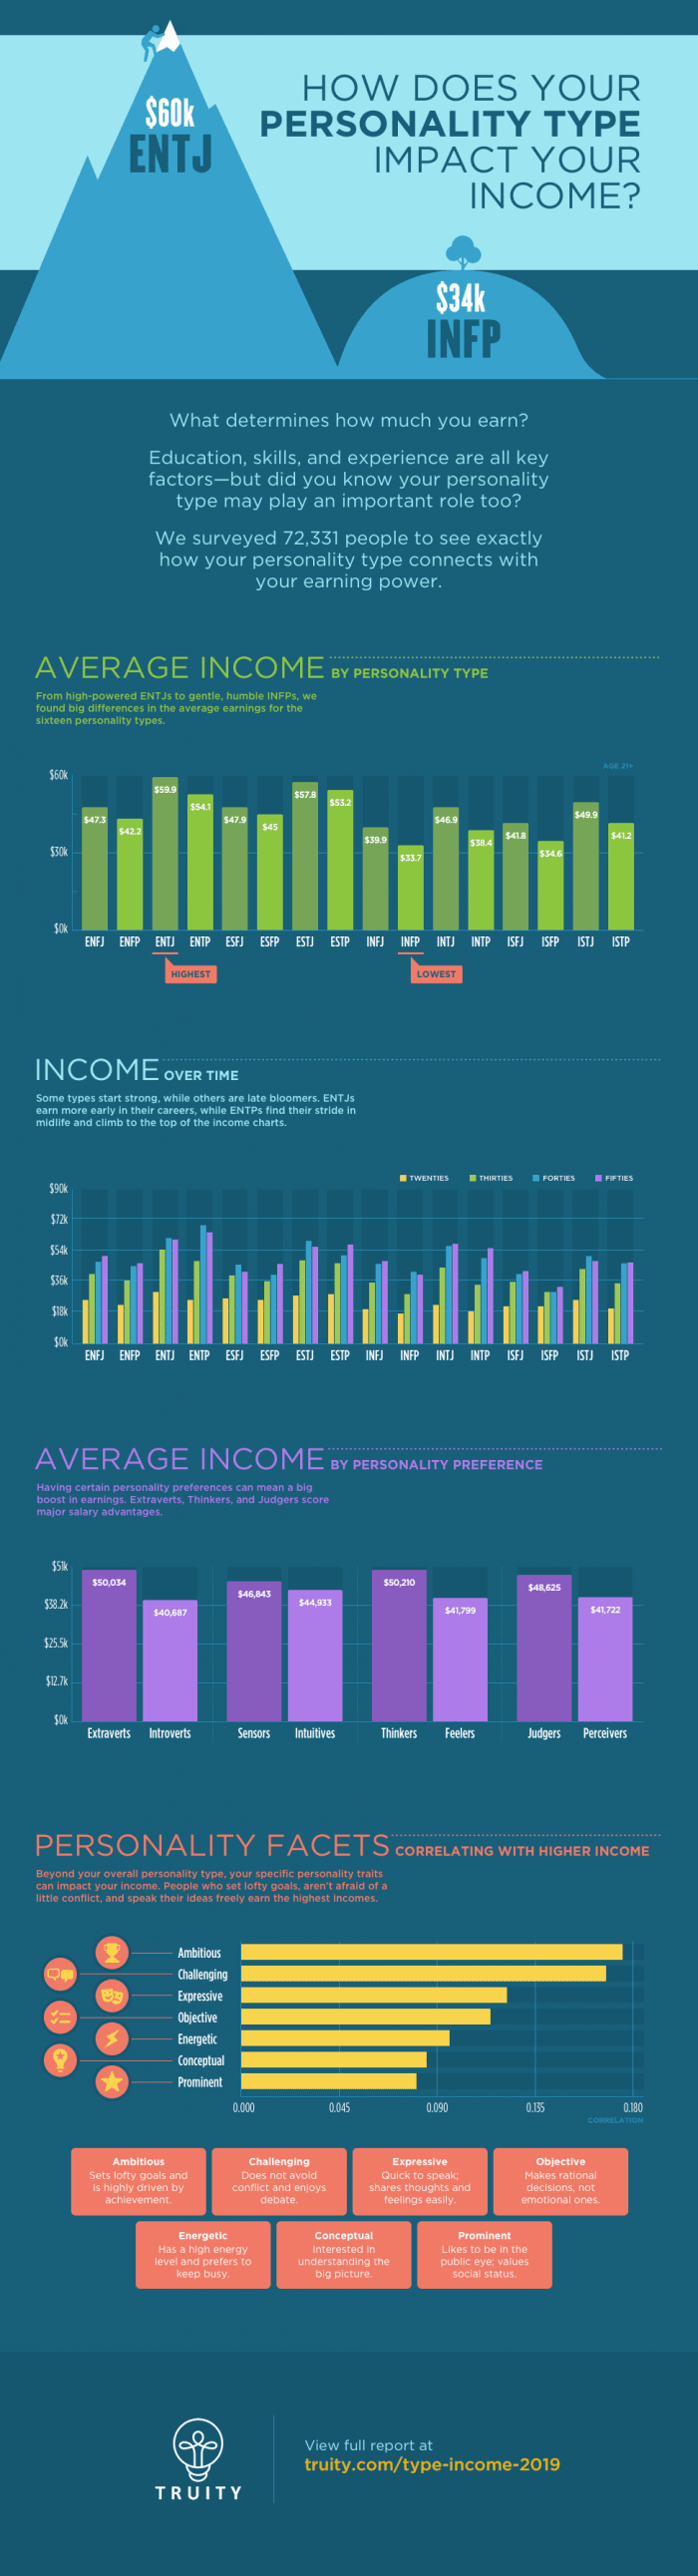 Income by personality type